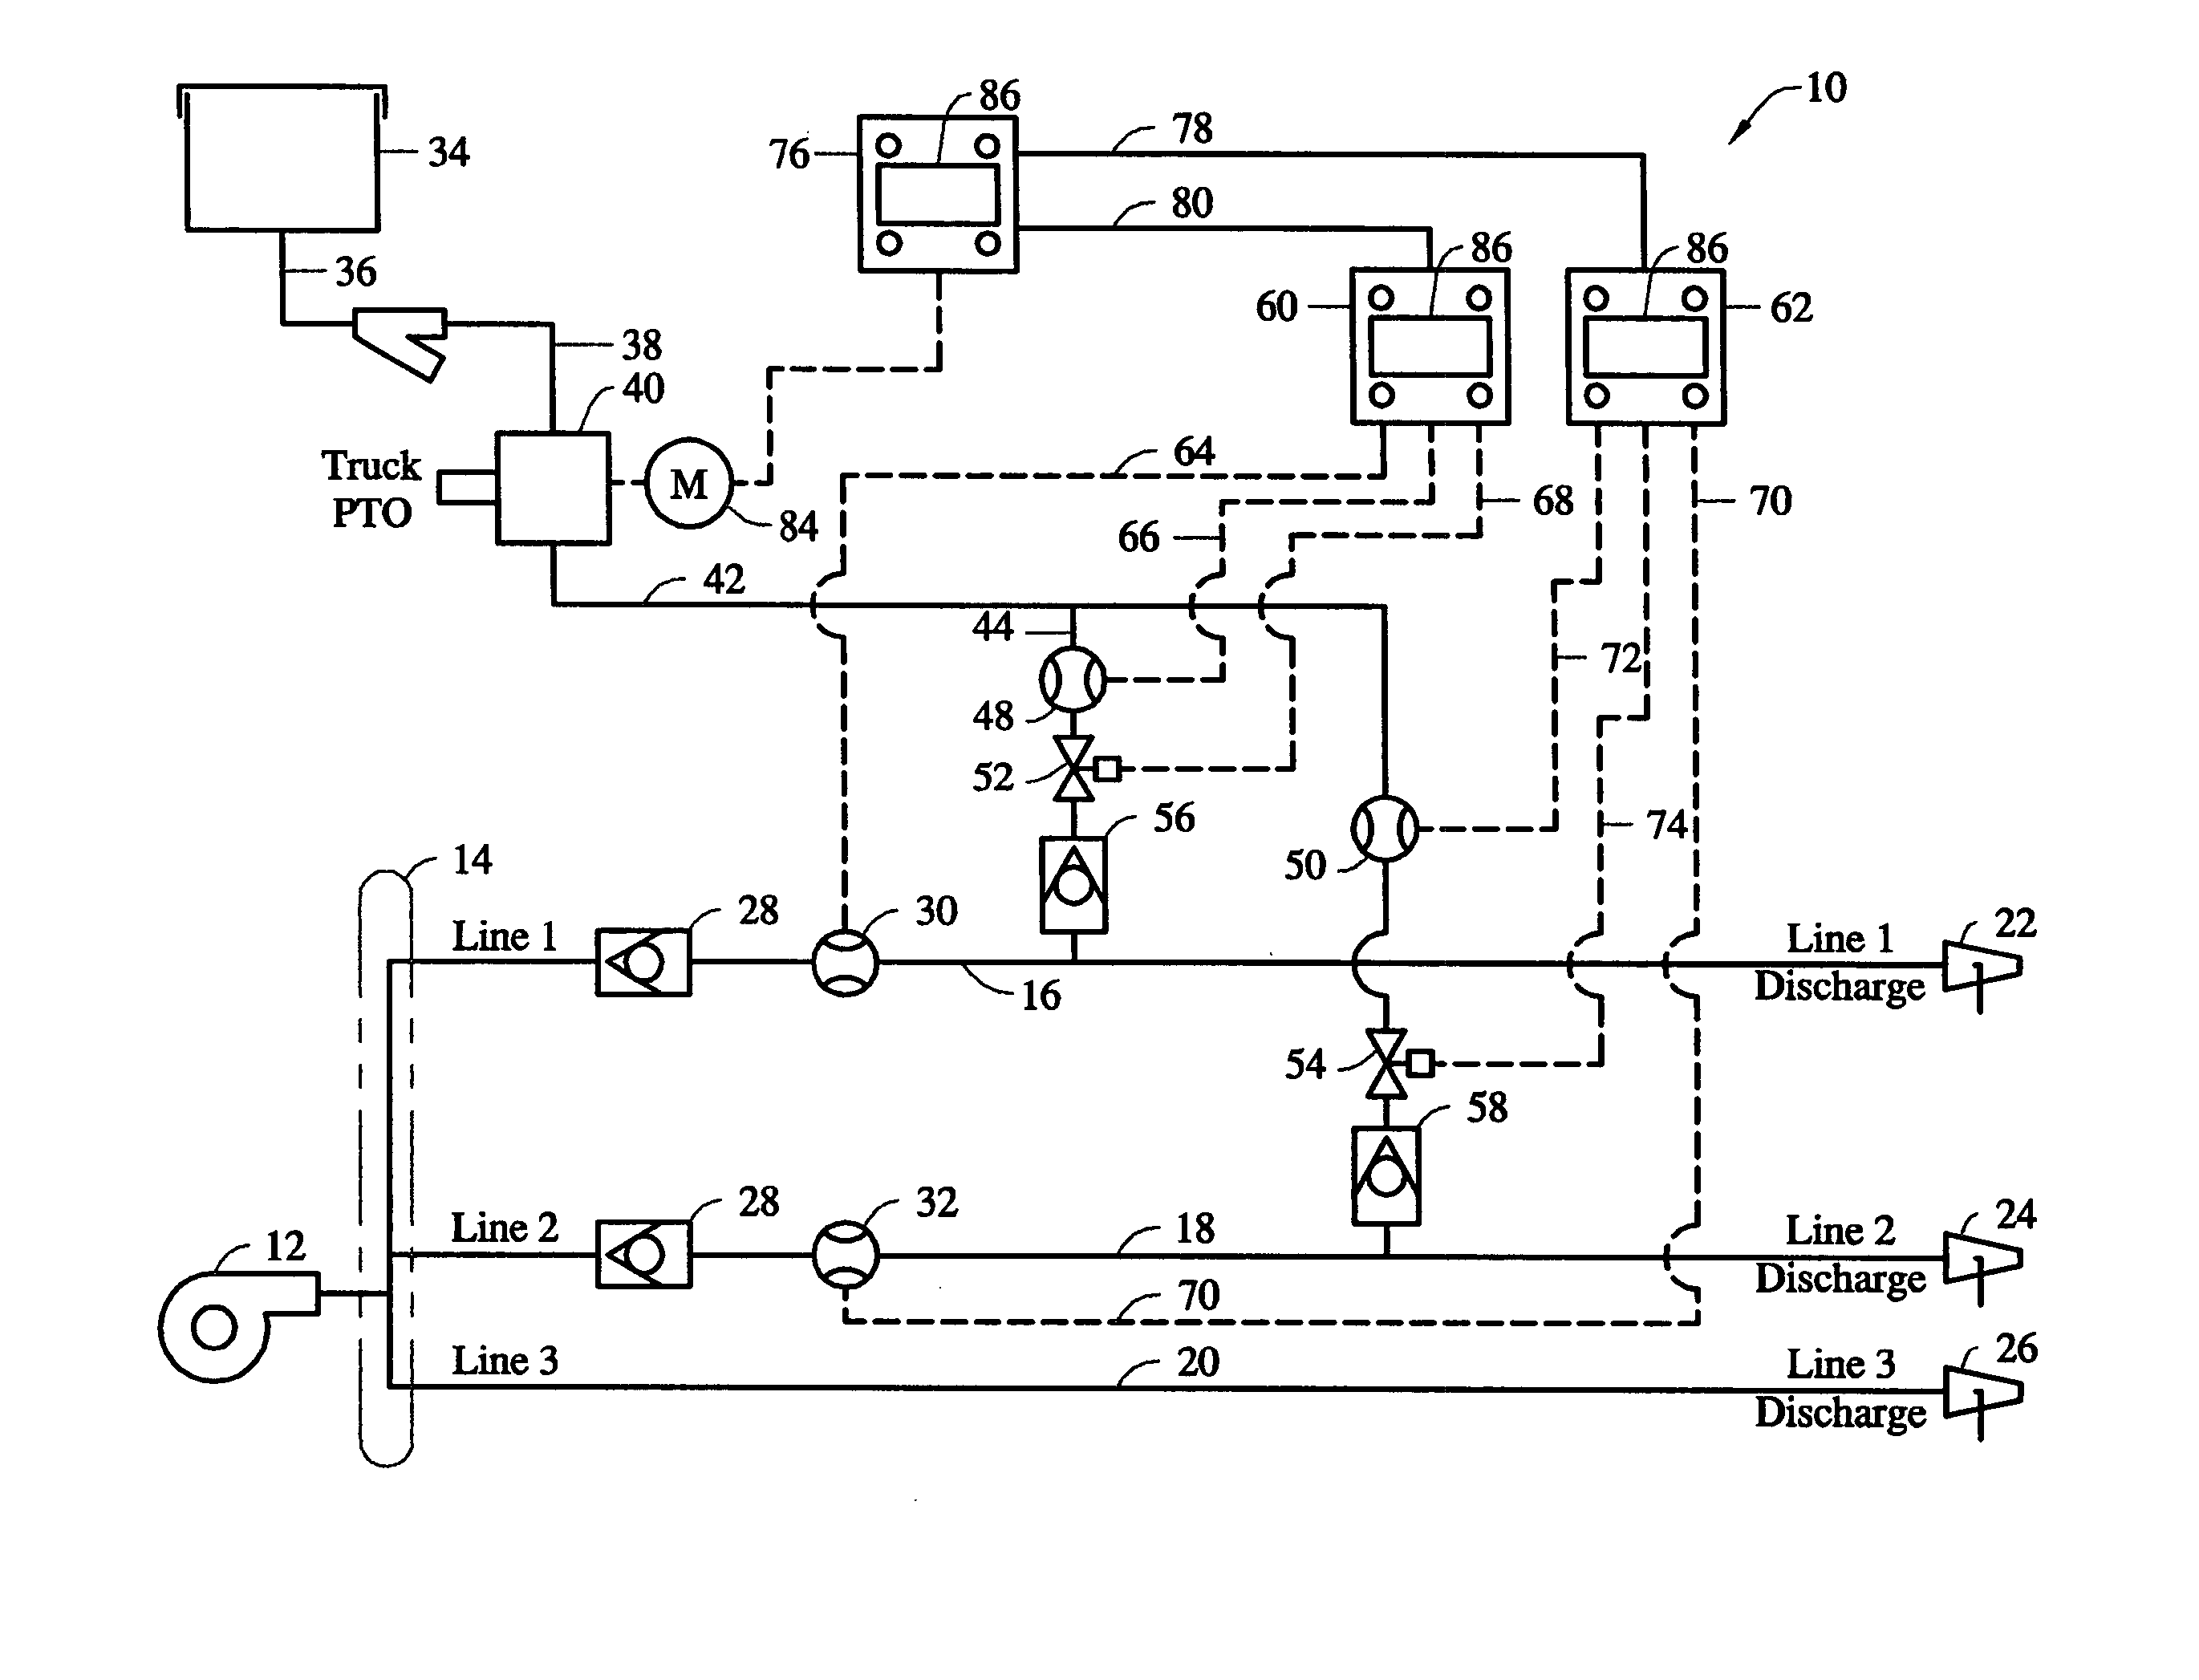 US20050045345A1 20050303 D00000 patent us20050045345 high flow foam system for fire fighting ansul system wiring schematic at edmiracle.co